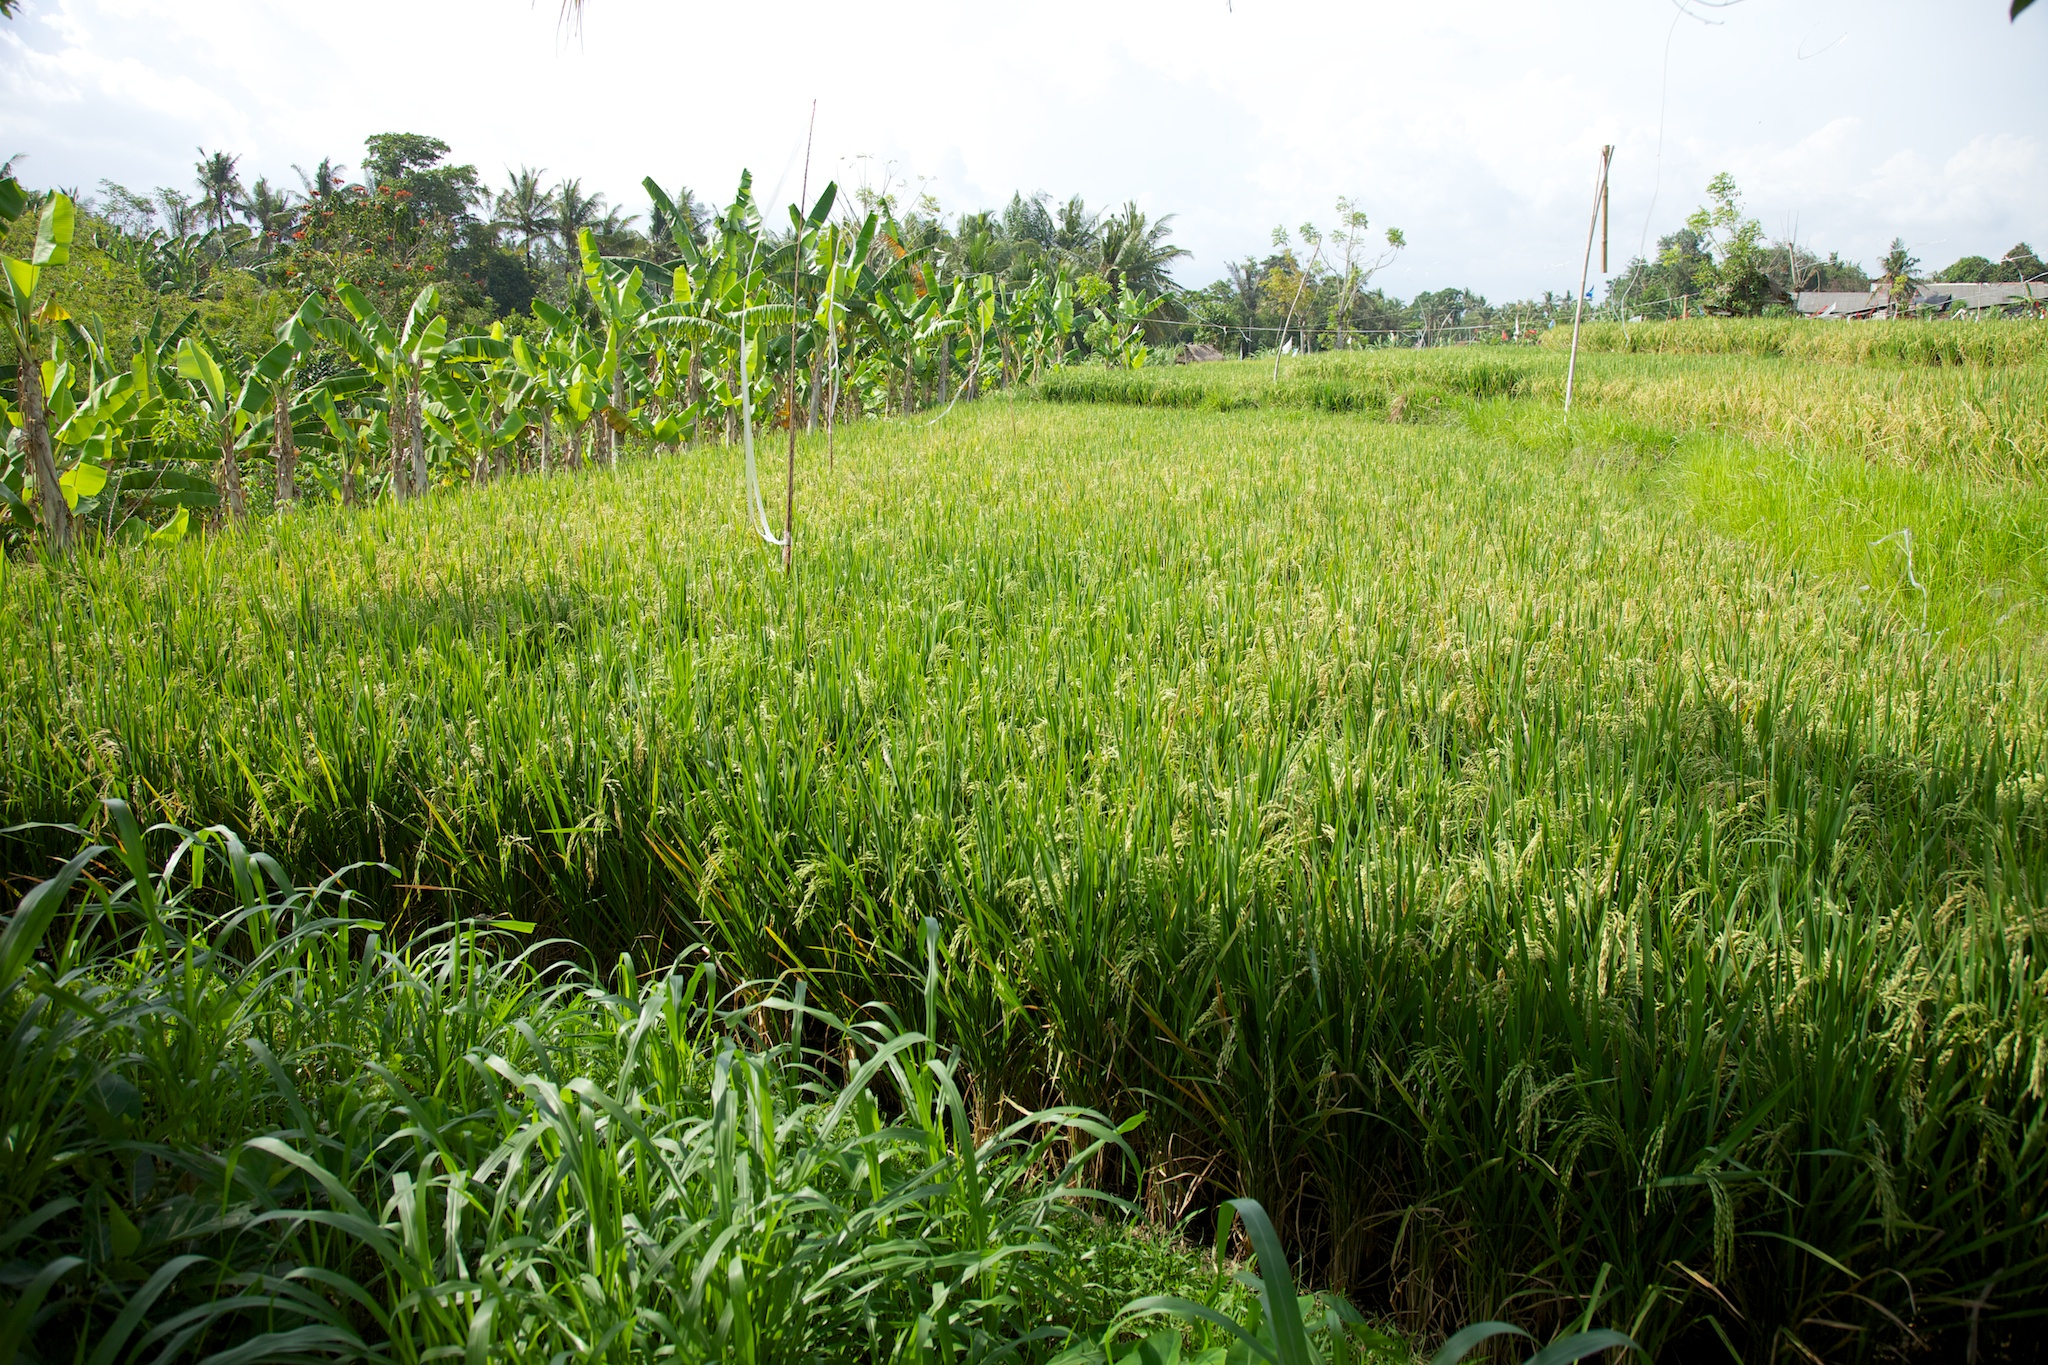 One of the most interesting things on this trip was seeing rice being grown. I've eaten a lot of it, but had no real idea what it looks like. Here is a rice paddy, with banana trees along the edges.